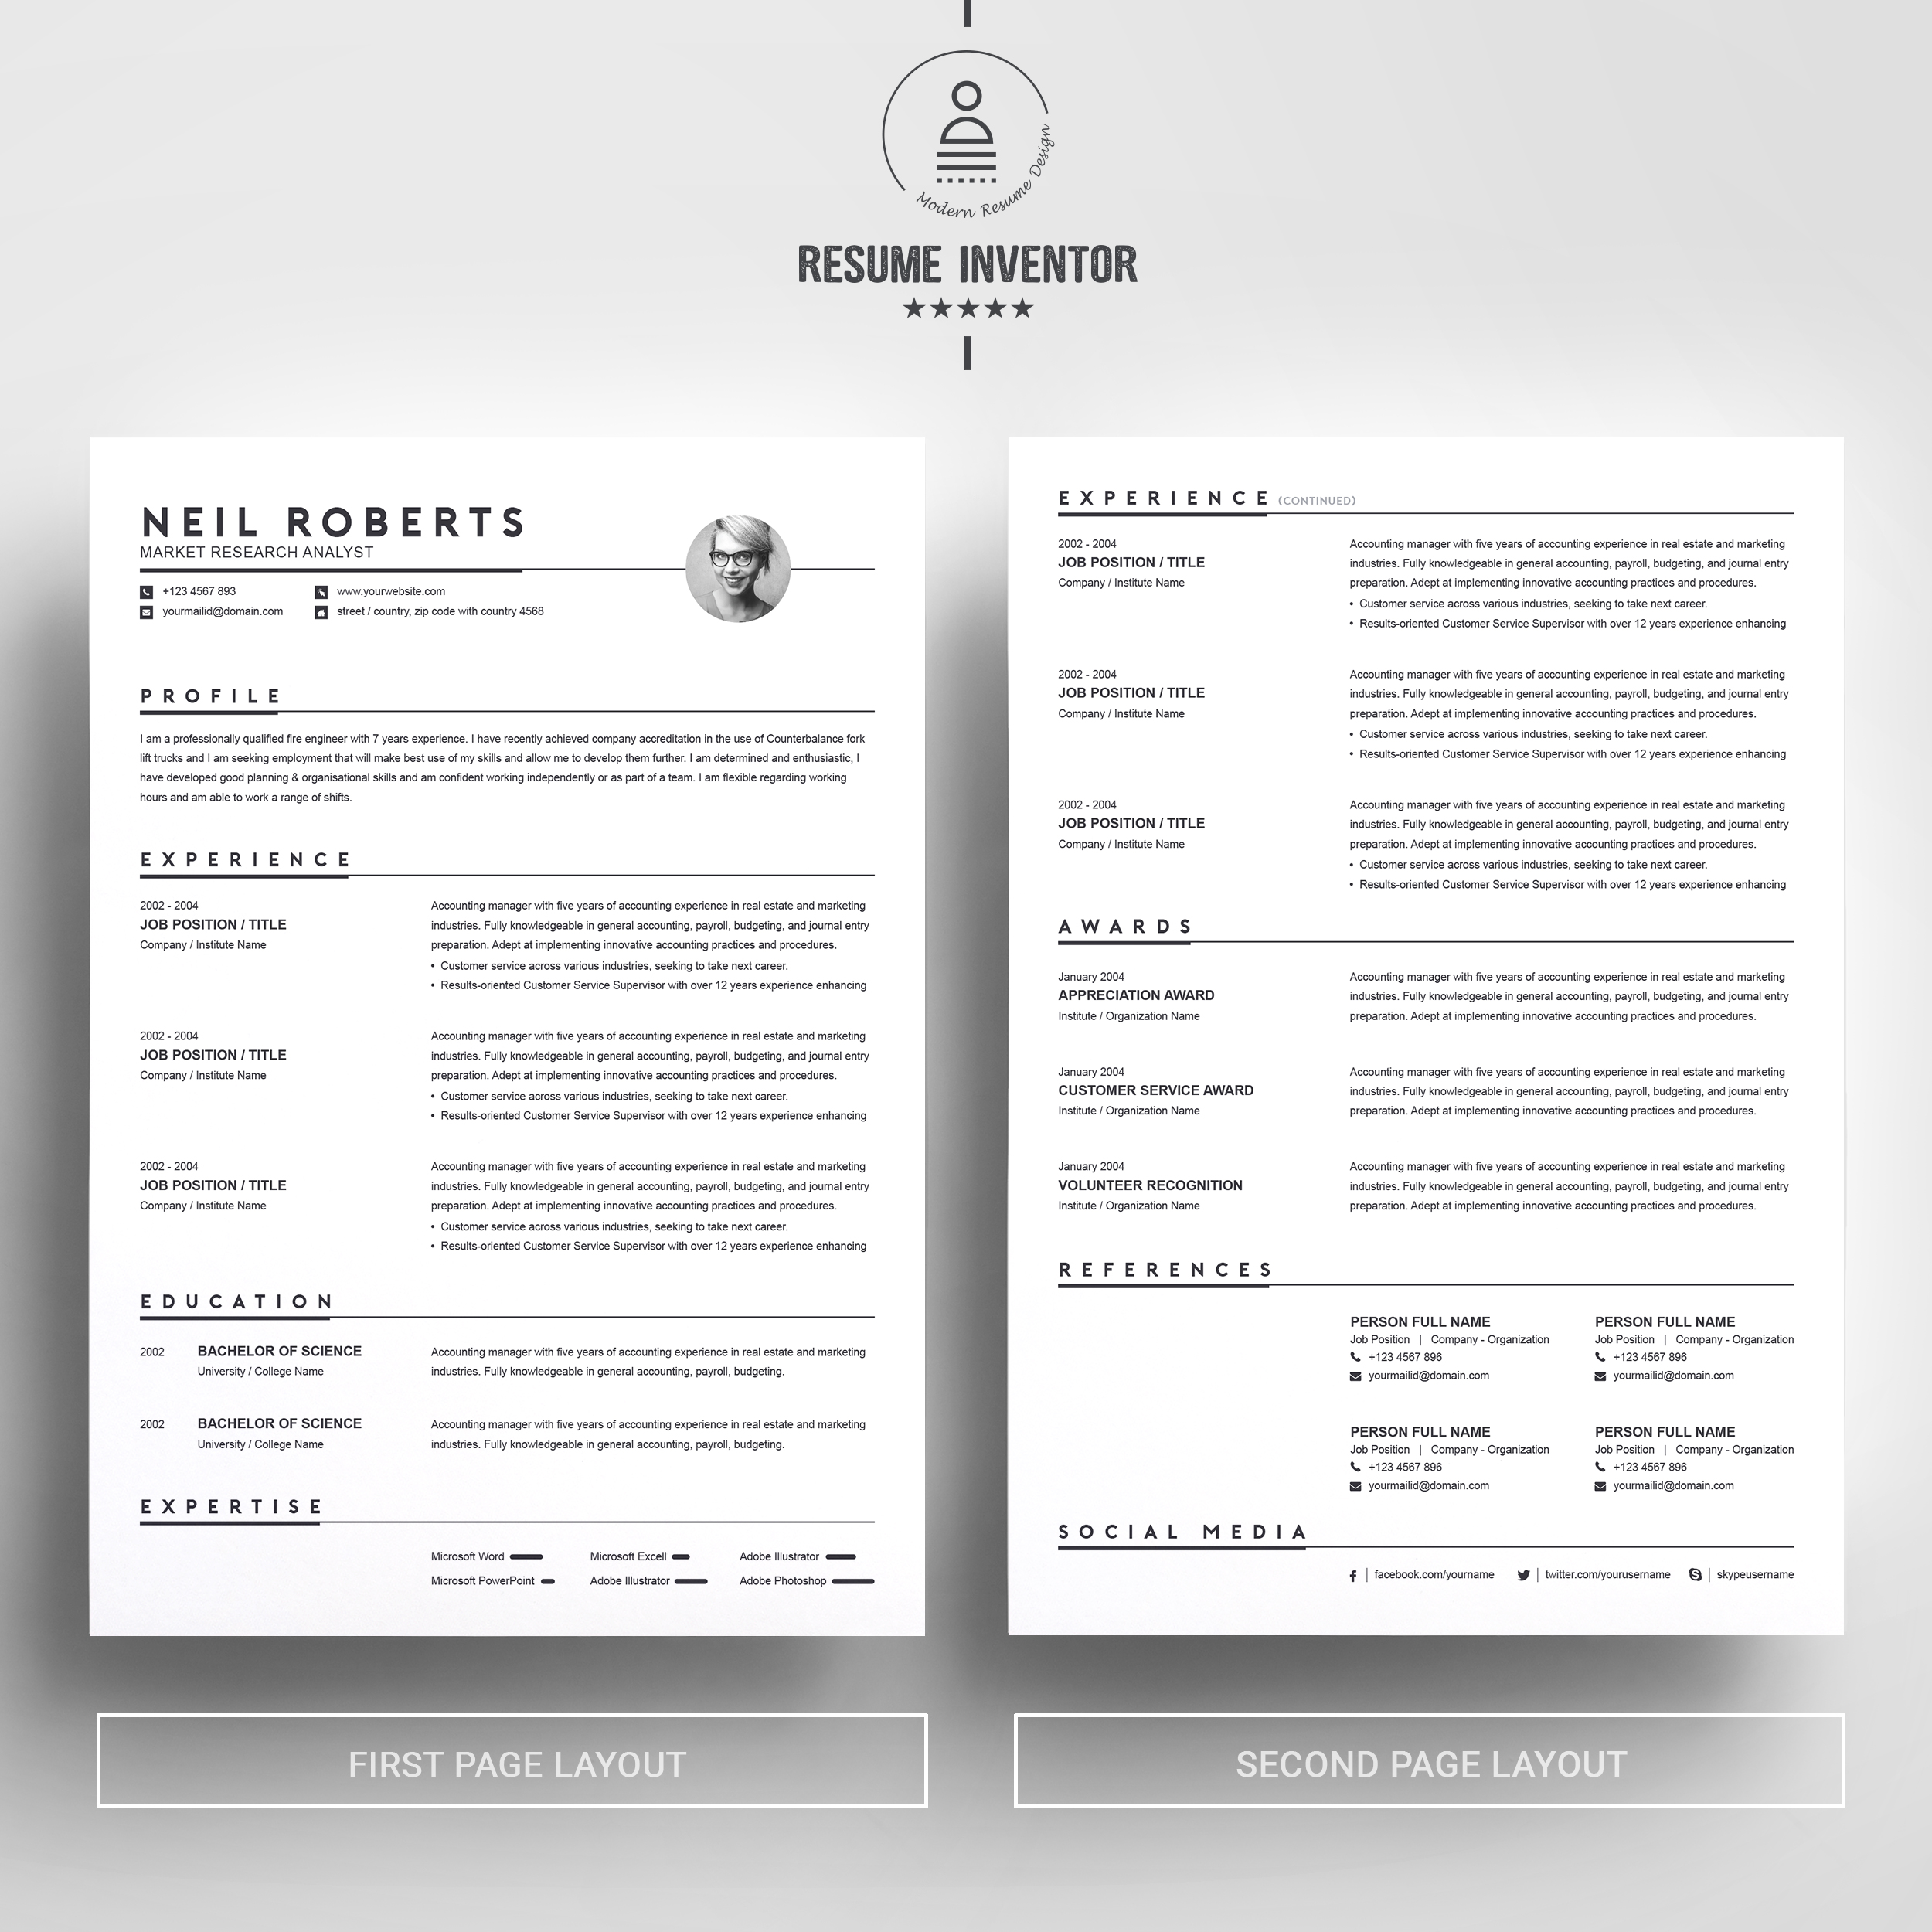 clean resume template word cv cover letter free resumes templates pixelify net microsoft Resume Microsoft Word Resume Tutorial